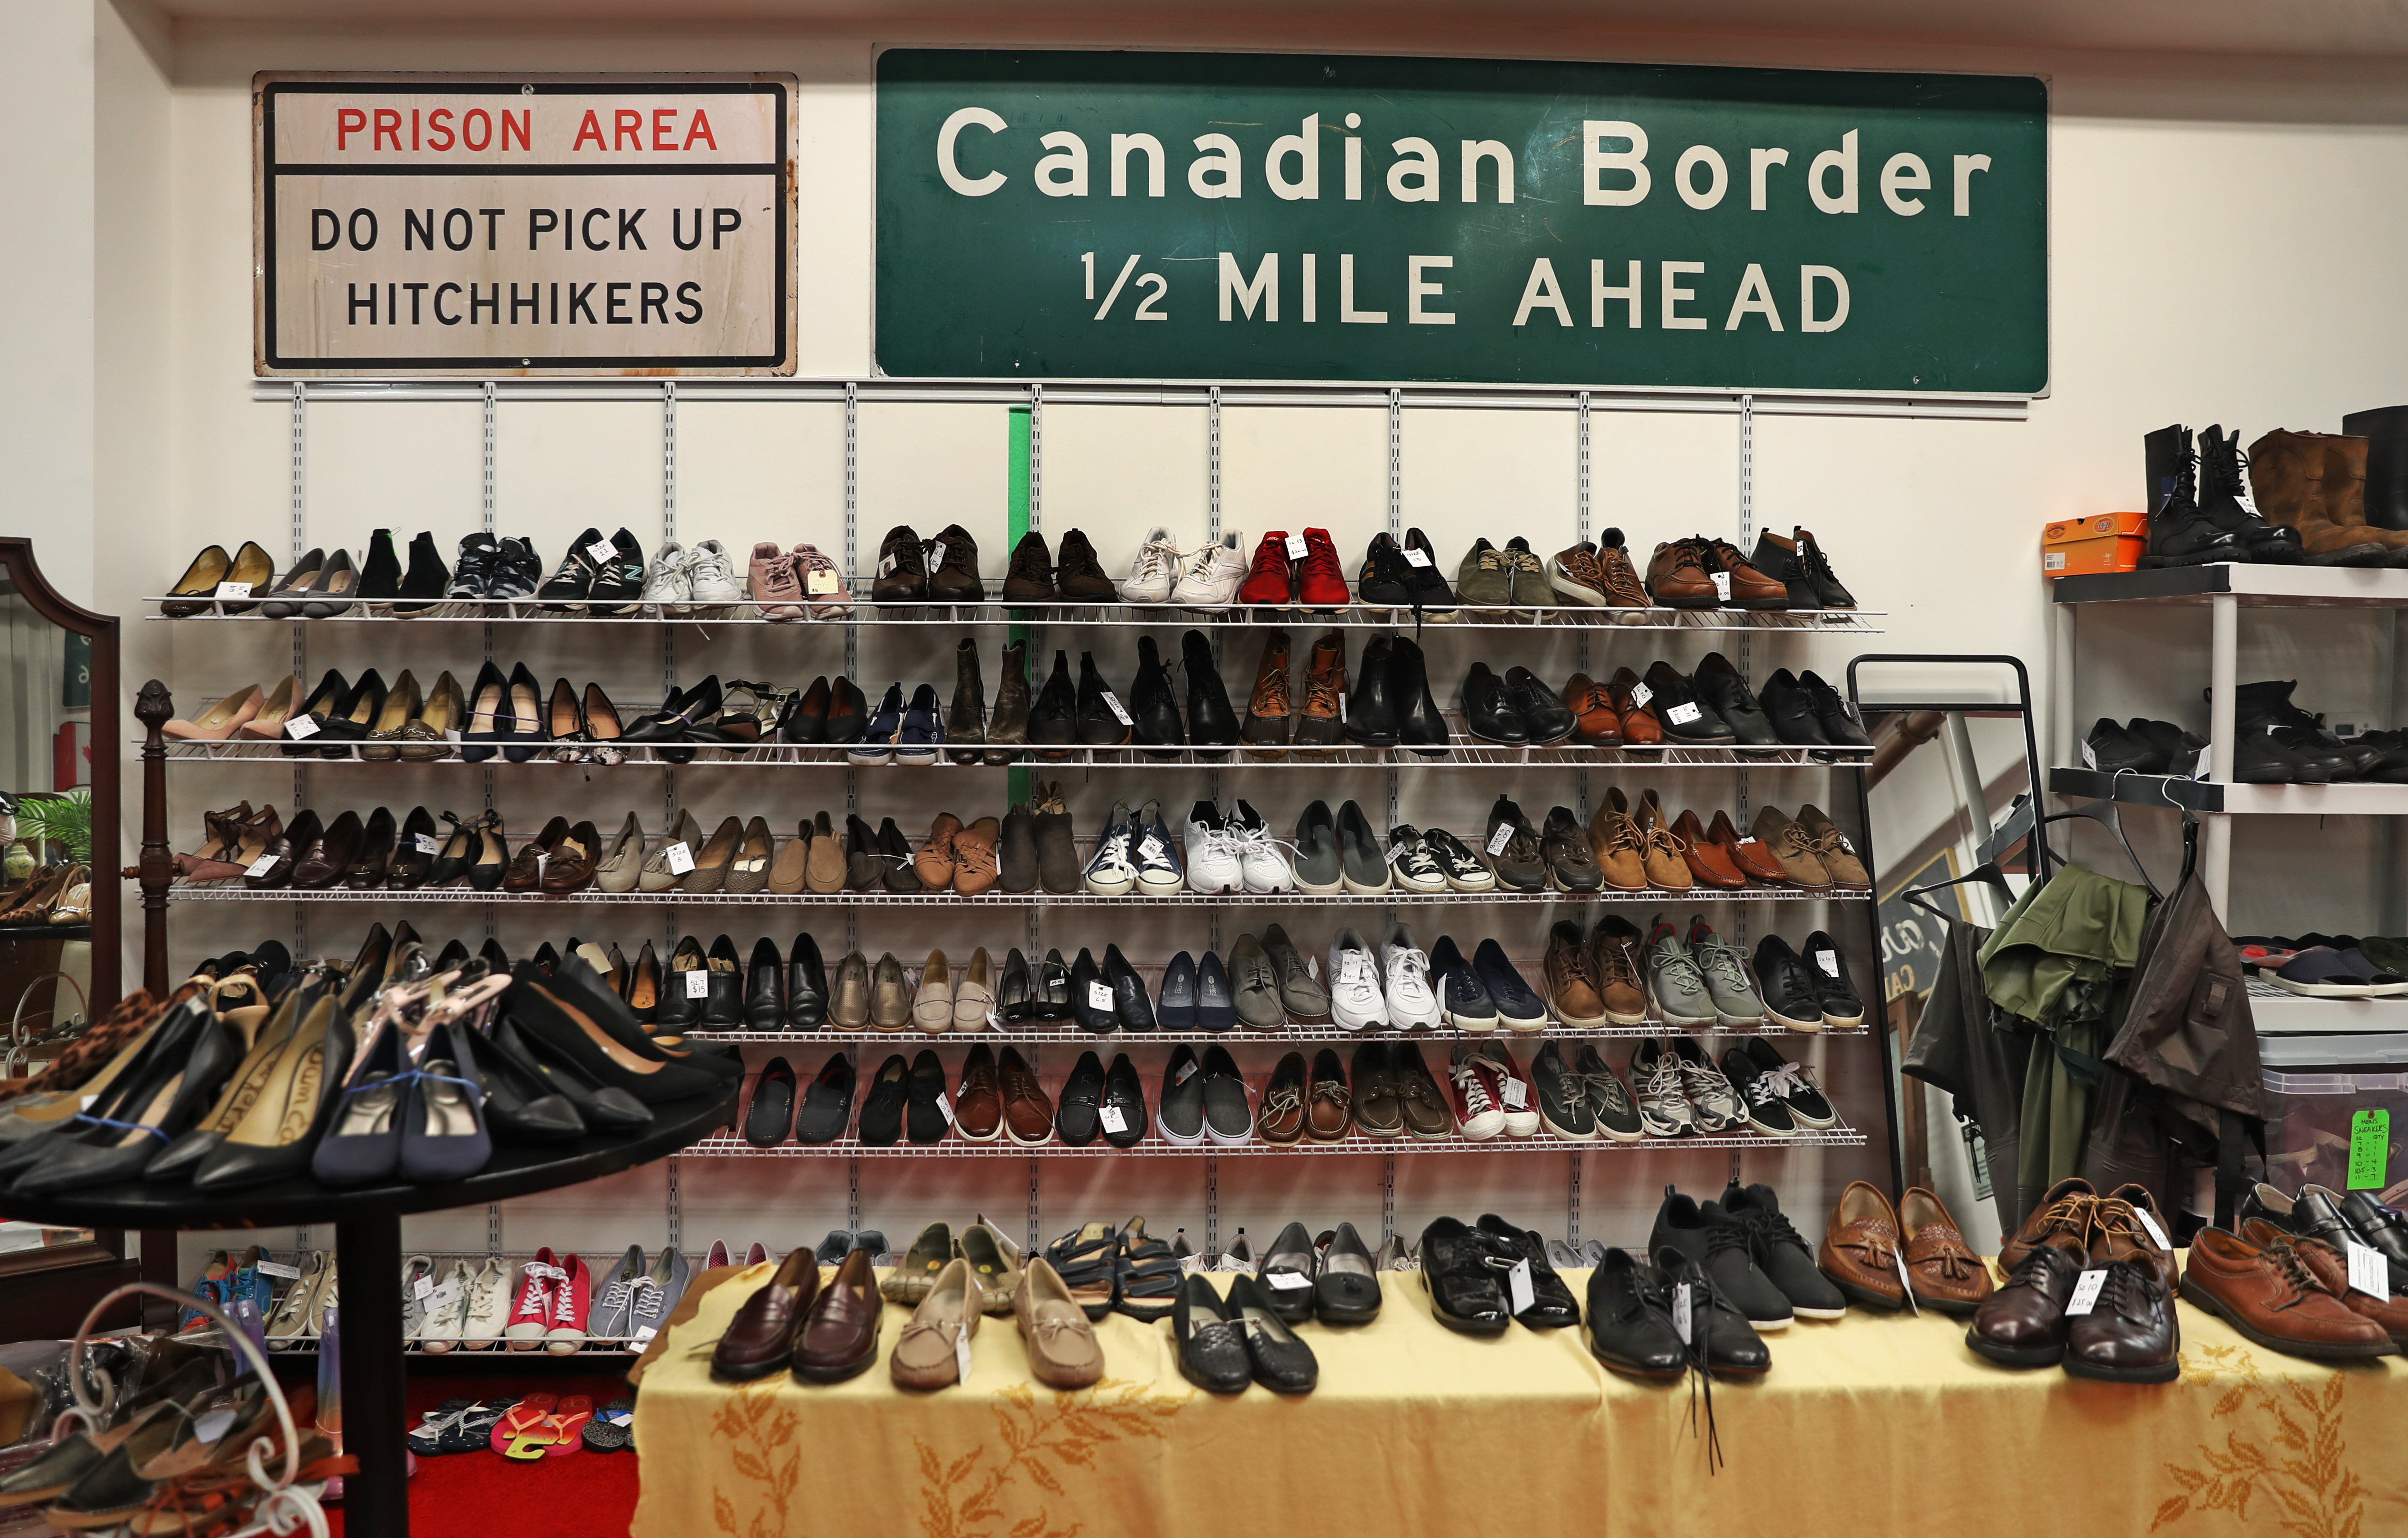 A display of shoes used by cast members of different productions at Hollywood Salvage in Westborough, a thrift shop that sells old movie props, costumes, and memorabilia.